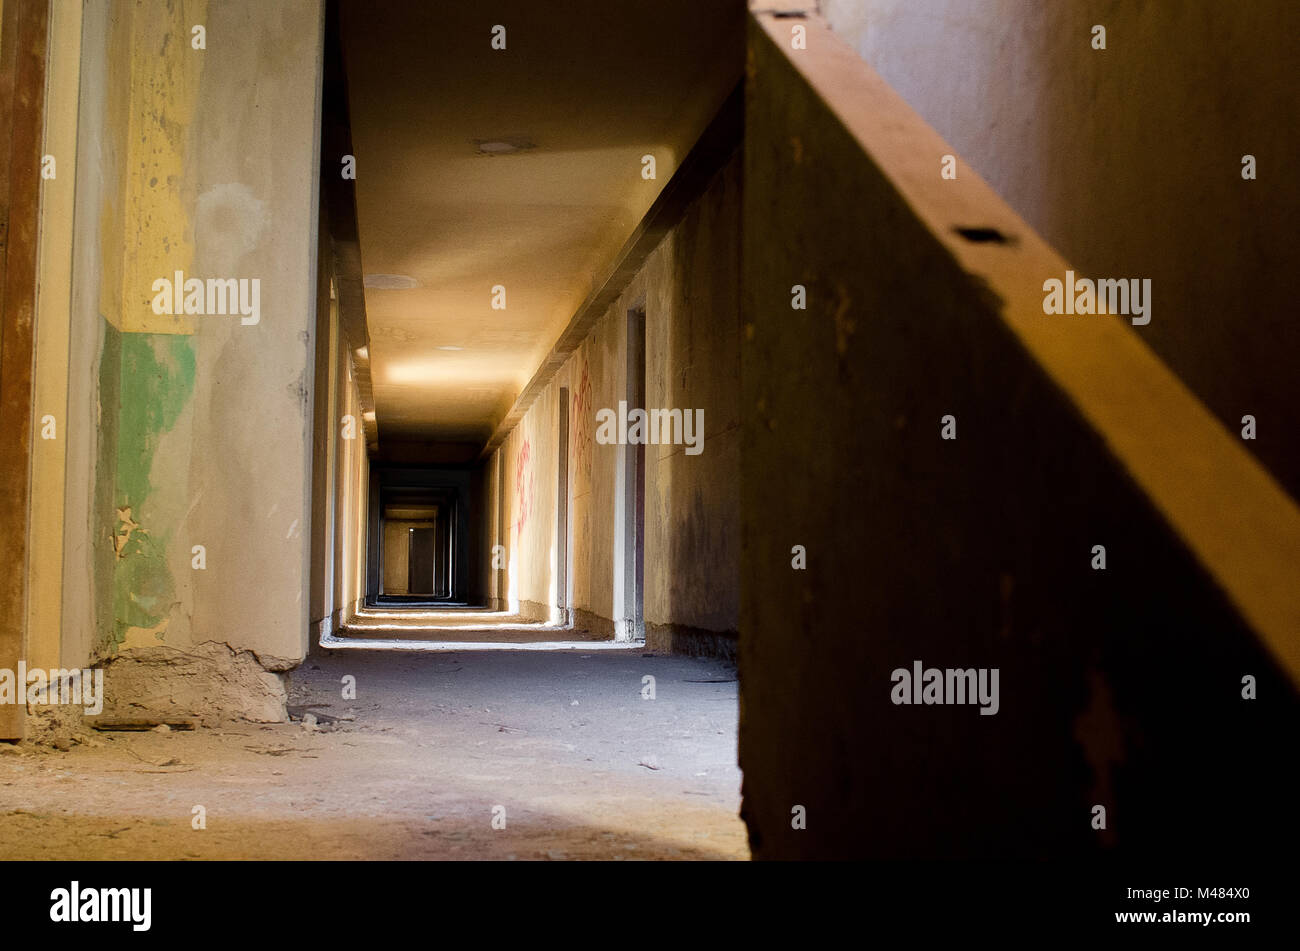 The Mystery of Abandoned Hotel - Stock Image